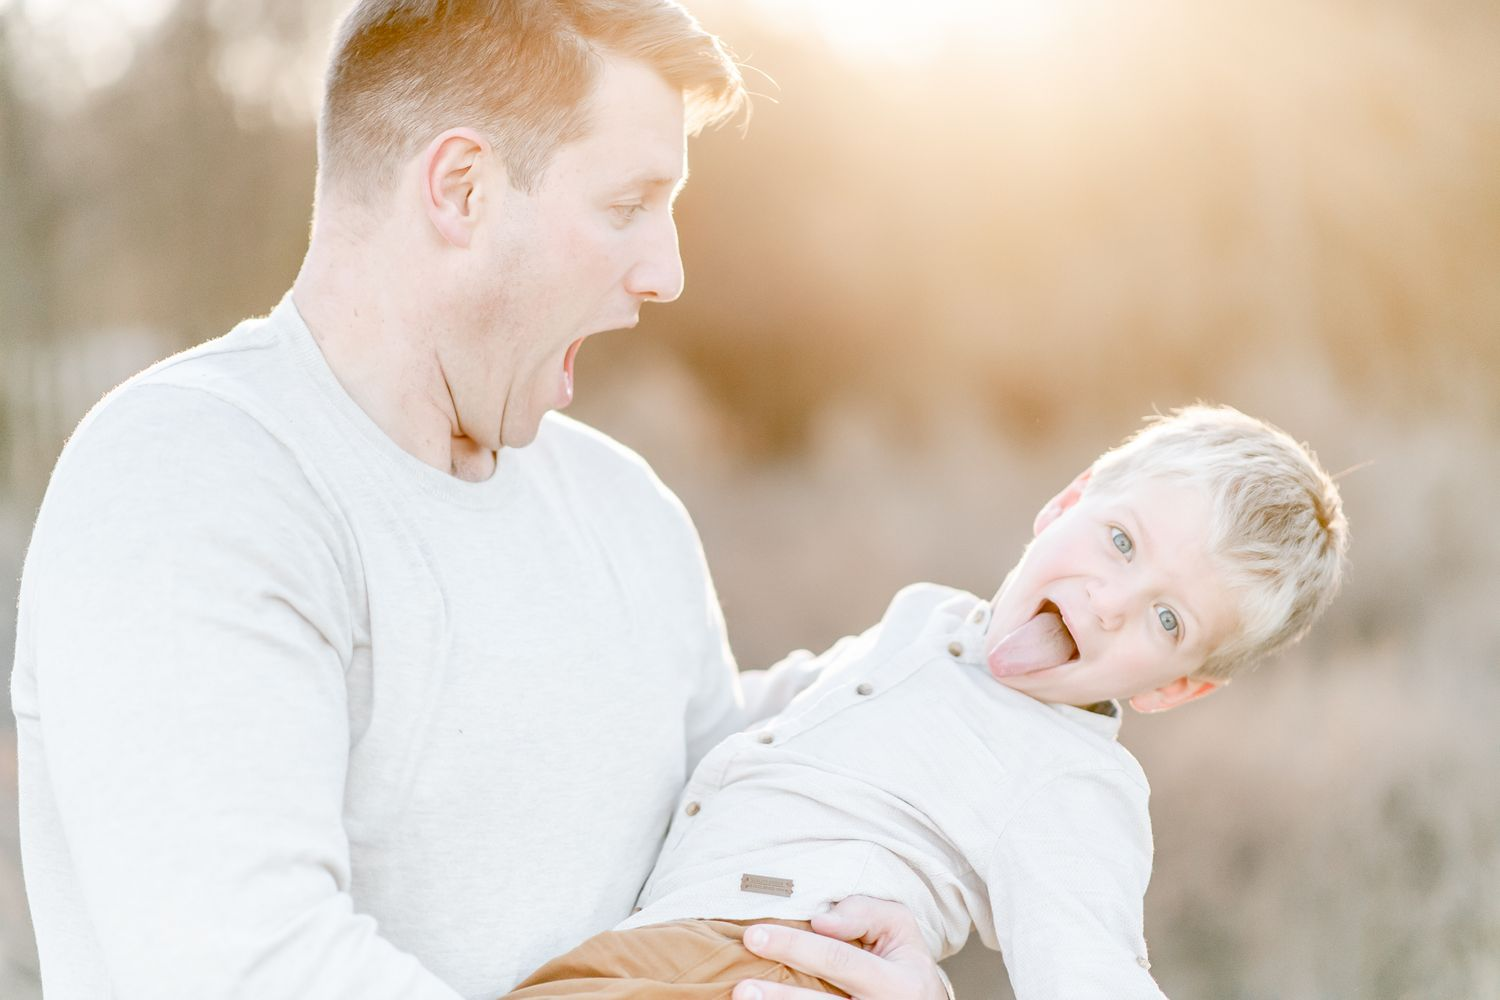 Father holds son as he leans back and sticks out his tongue